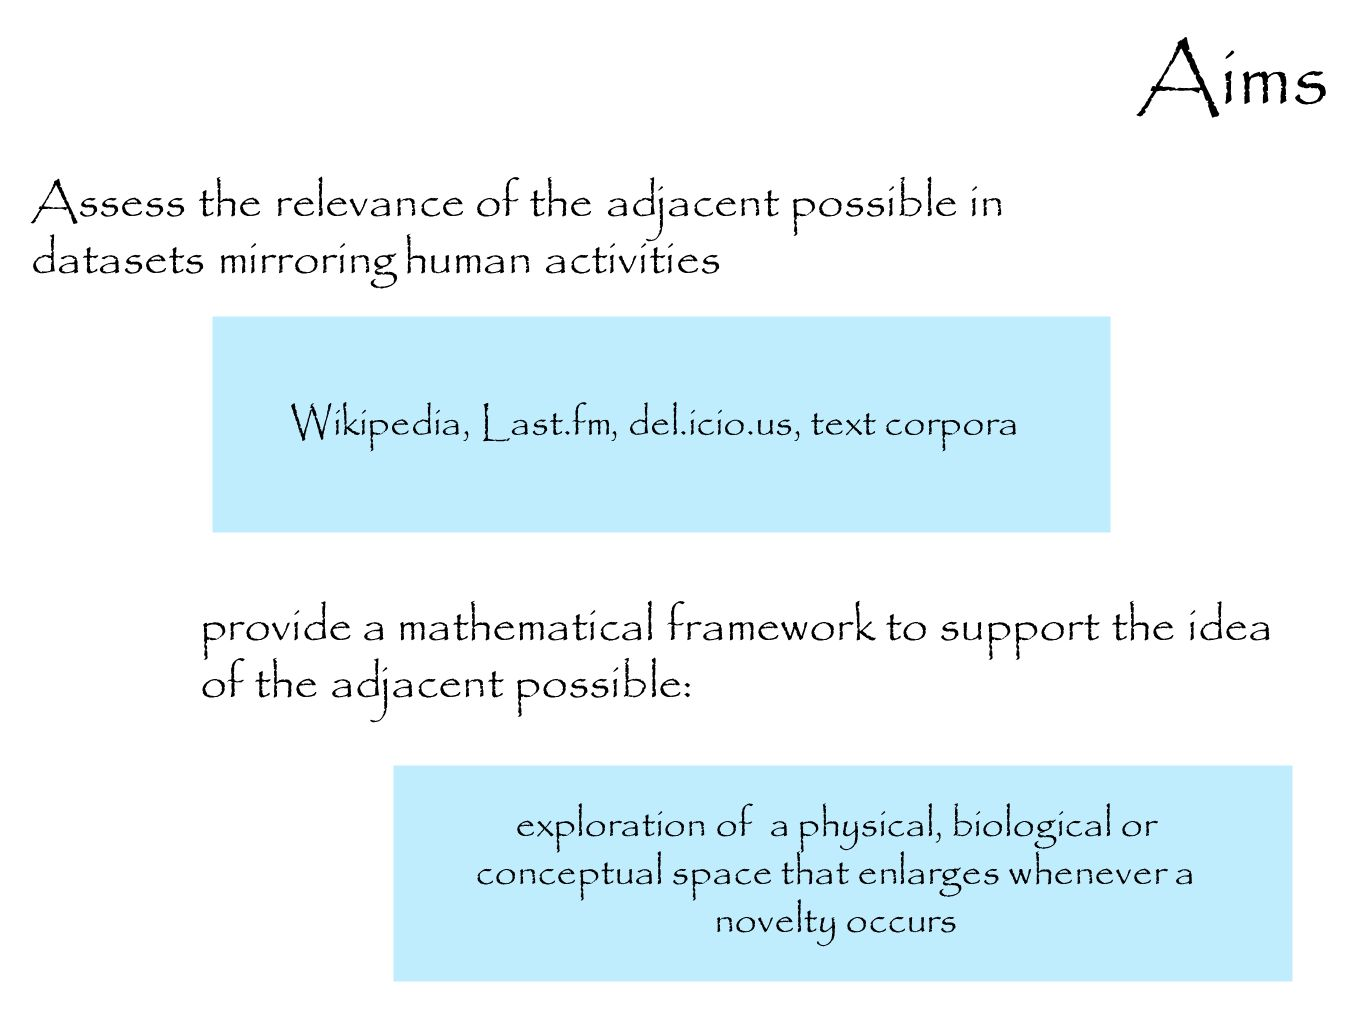 Aims provide a mathematical framework to support the idea of the adjacent possible: Assess the relevance of the adjacent possible in datasets mirroring human activities exploration of a physical, biological or conceptual space that enlarges whenever a novelty occurs Wikipedia, Last.fm, del.icio.us, text corpora